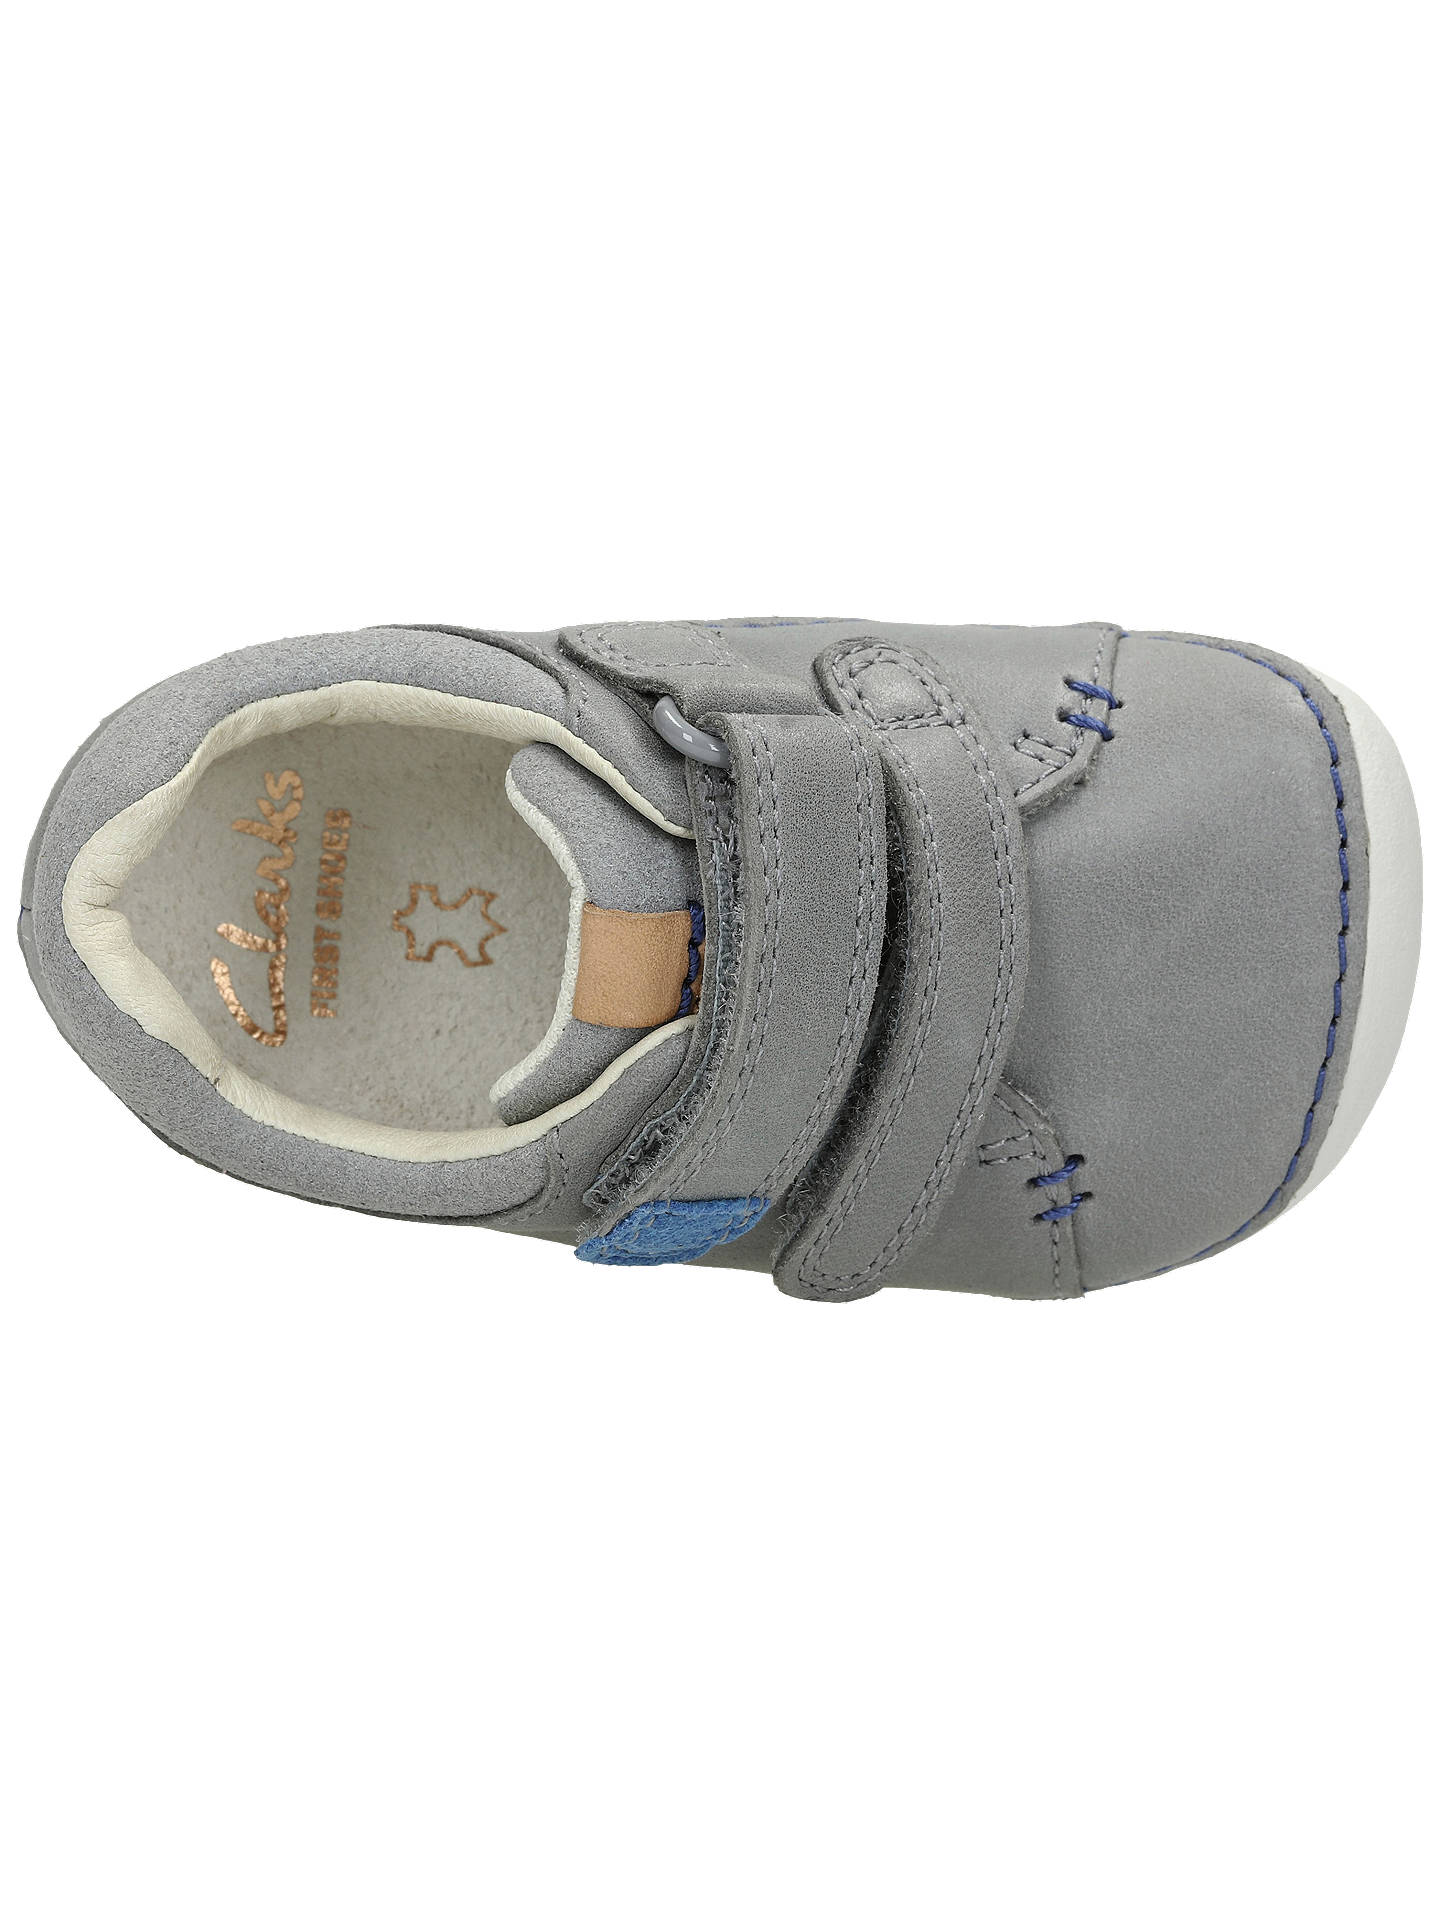 Boys Clarks Casual First Shoes Tiny Toby